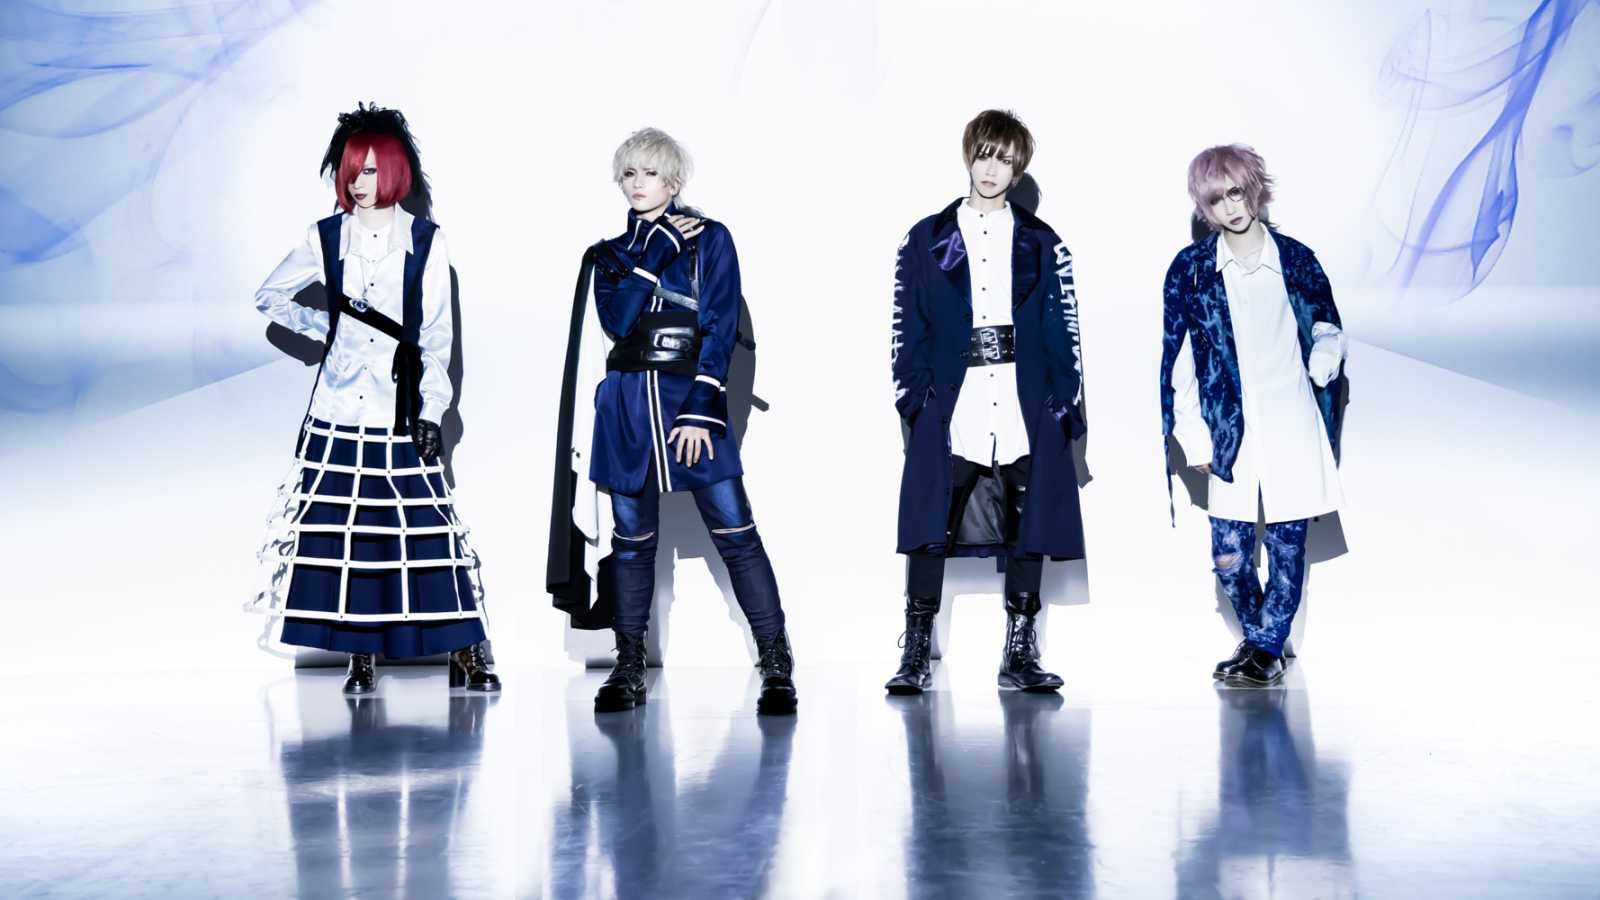 New Single from Royz © Royz. All rights reserved.